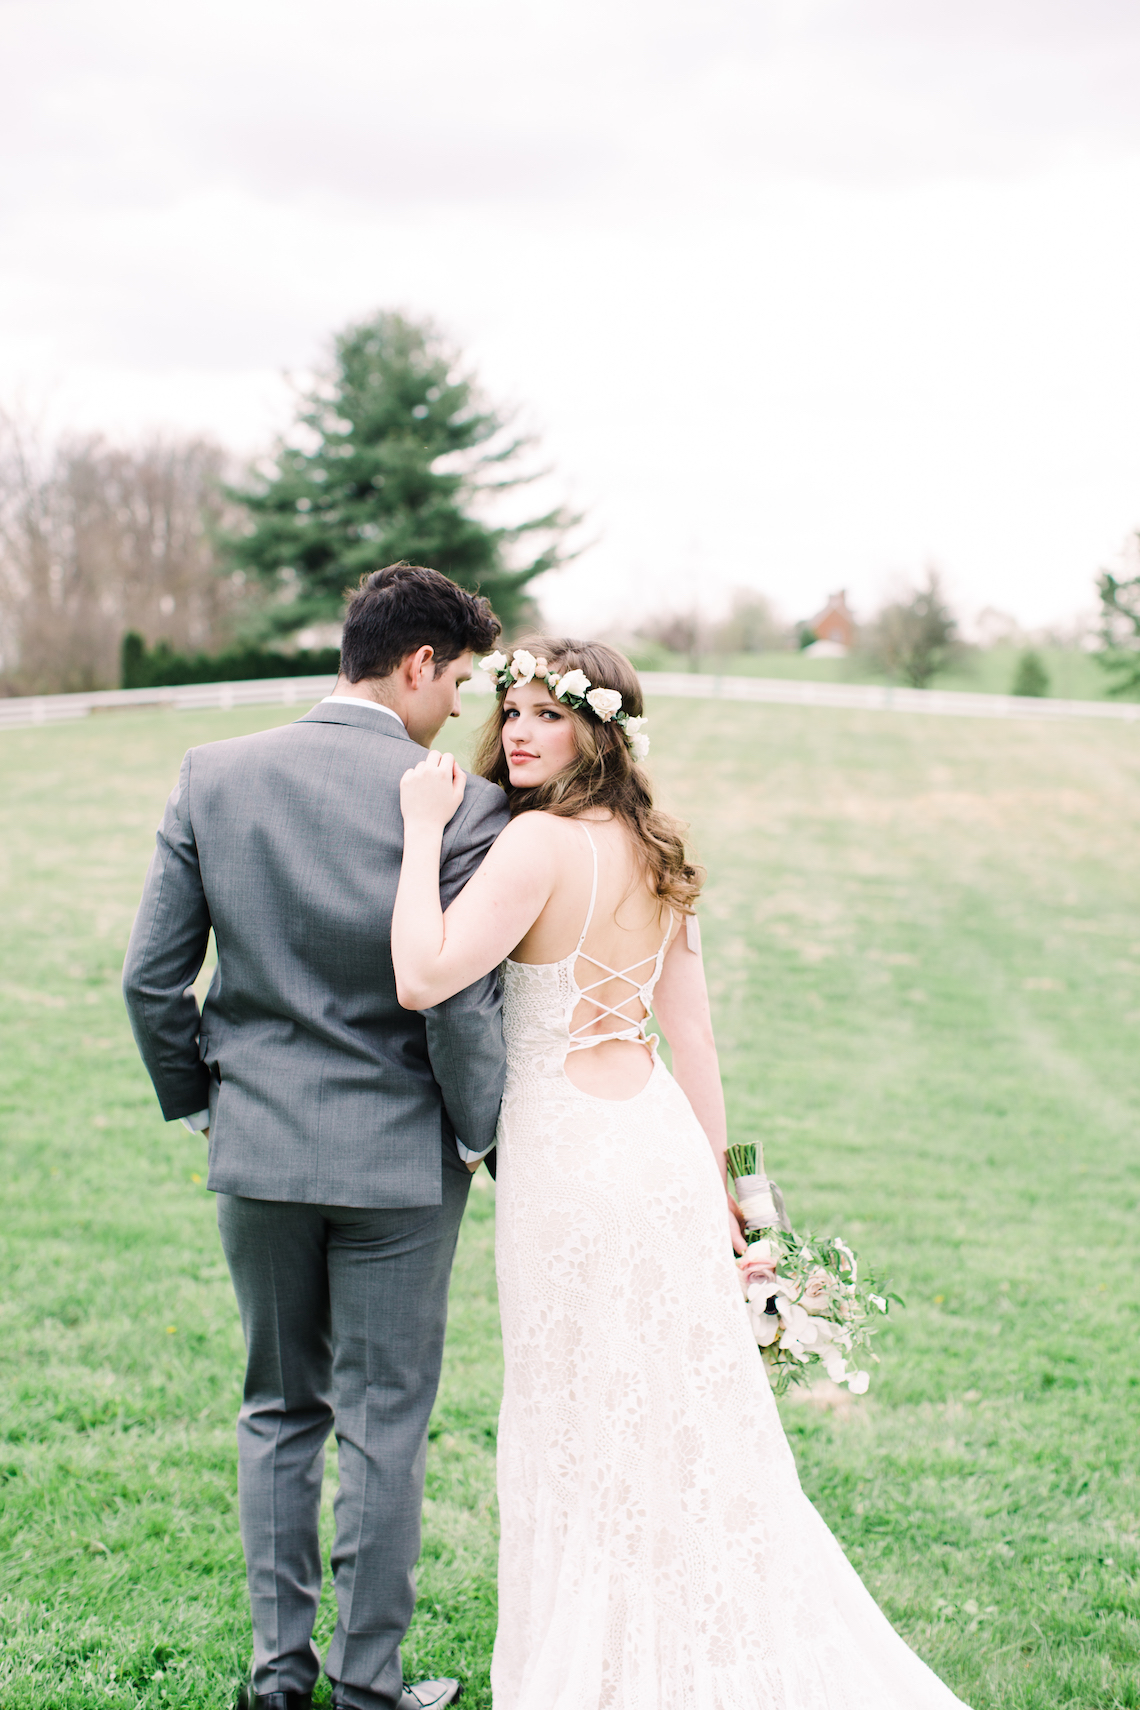 Quaint Country Chic Boho Wedding Inspiration – Sons and Daughters Photography 15